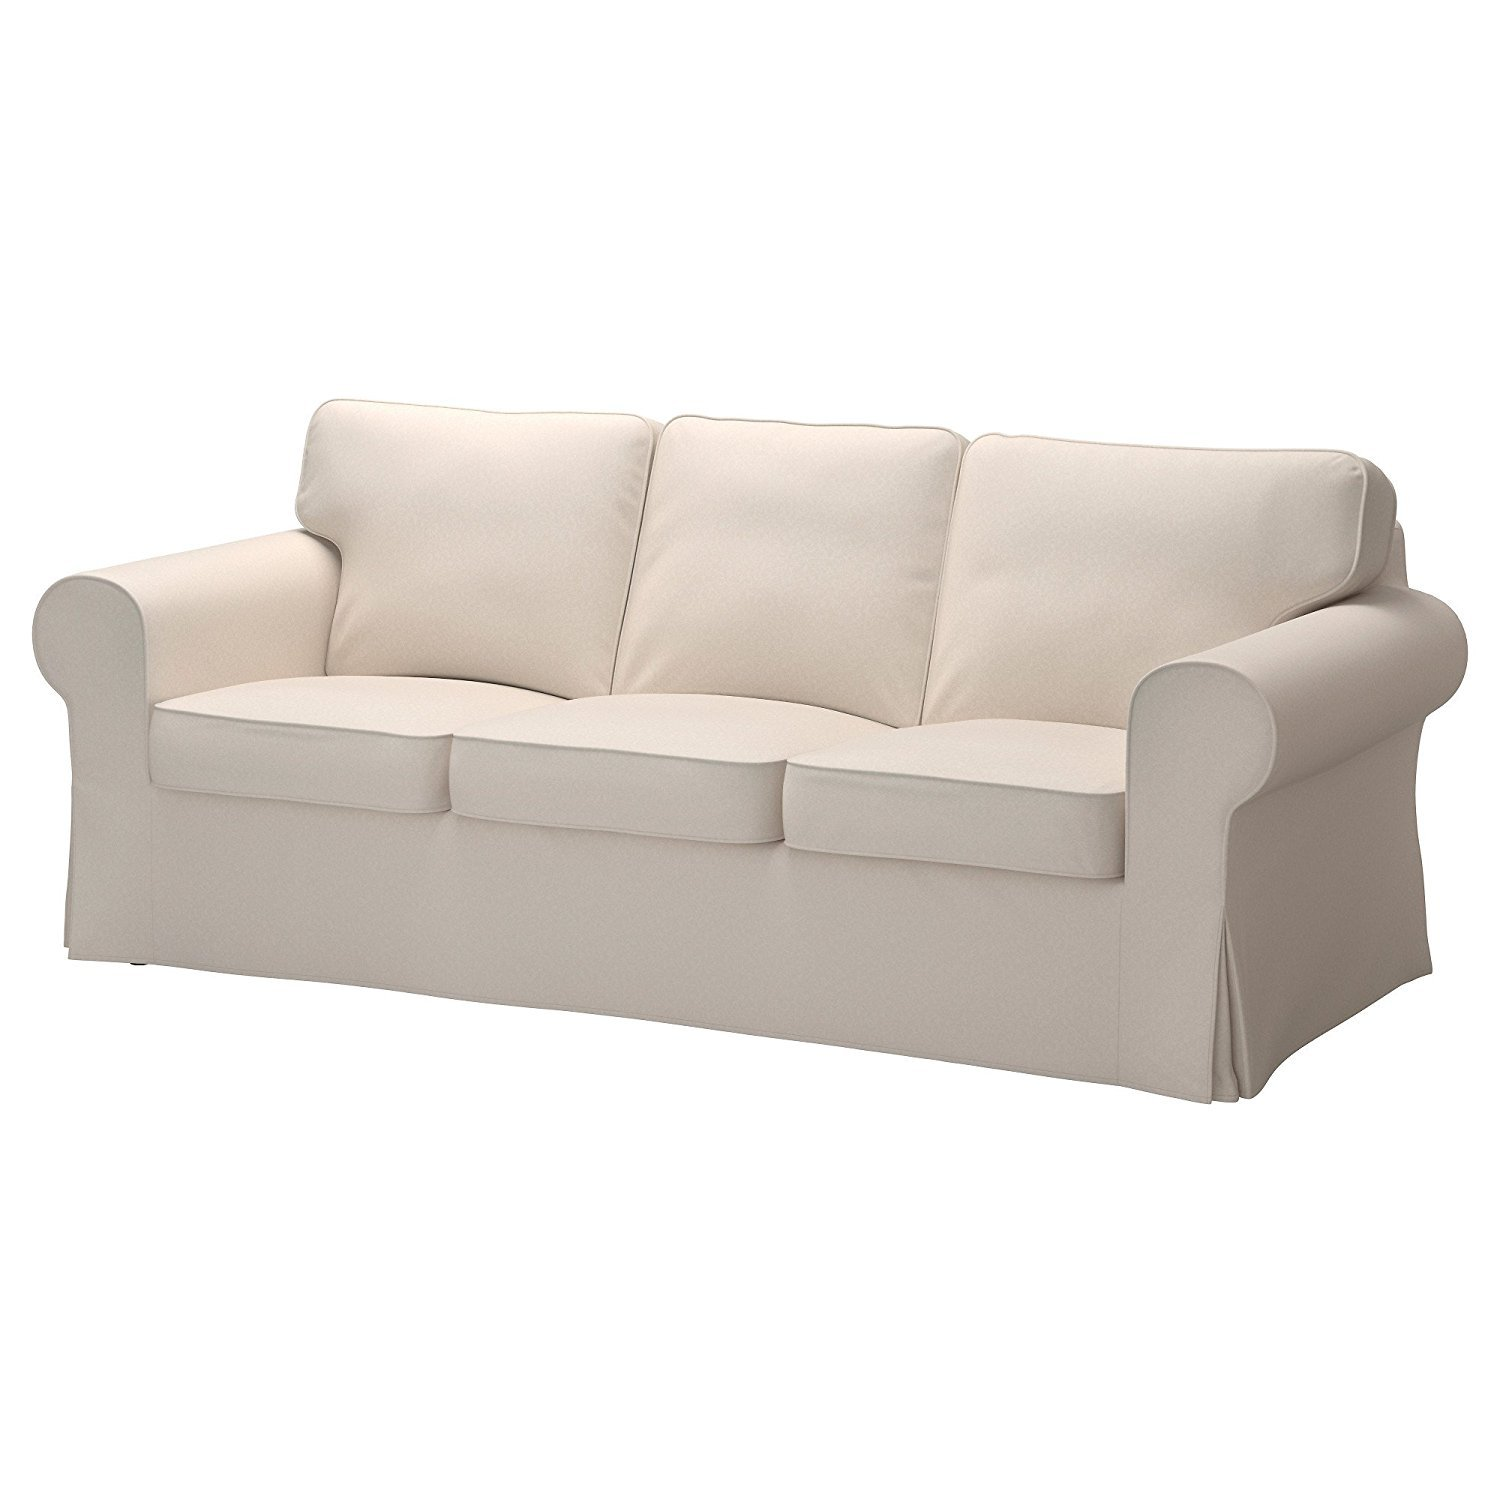 Awesome Replacement Cover For Ikea Ektorp 3 Seat Sofa Without Chaise Lofallet Beige Alphanode Cool Chair Designs And Ideas Alphanodeonline